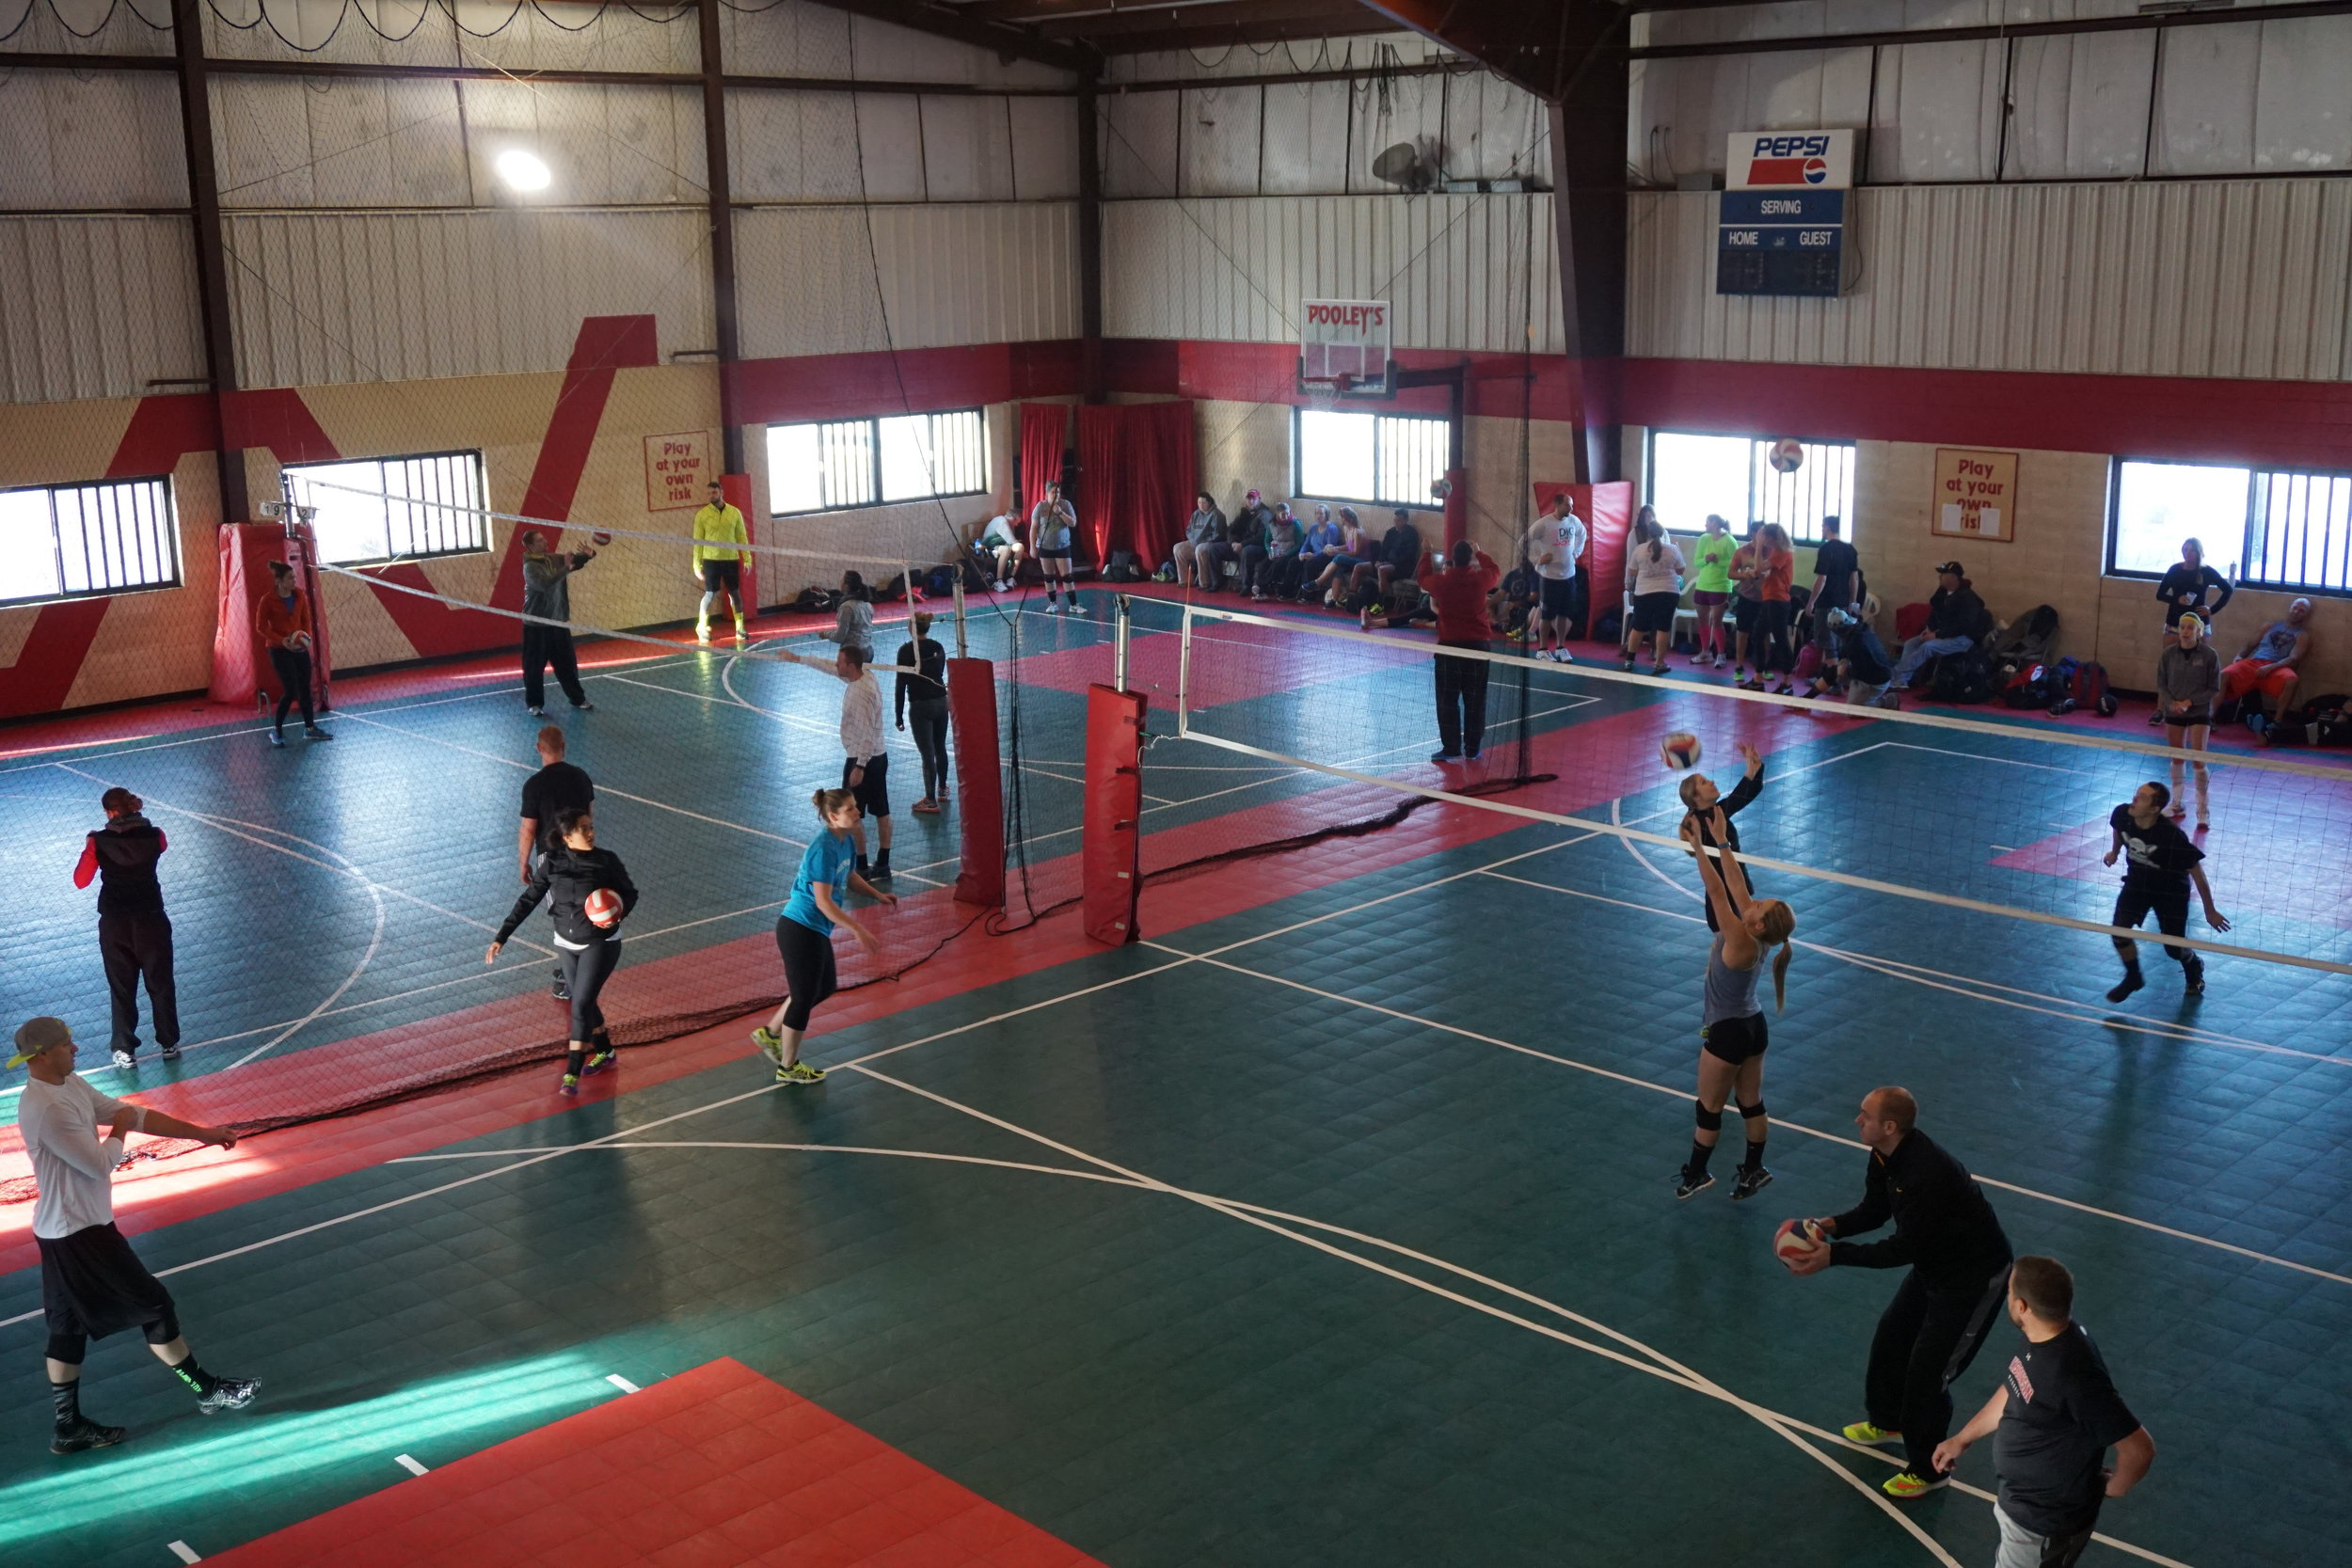 Volleyball Pooley S Sports Bar And Event Center